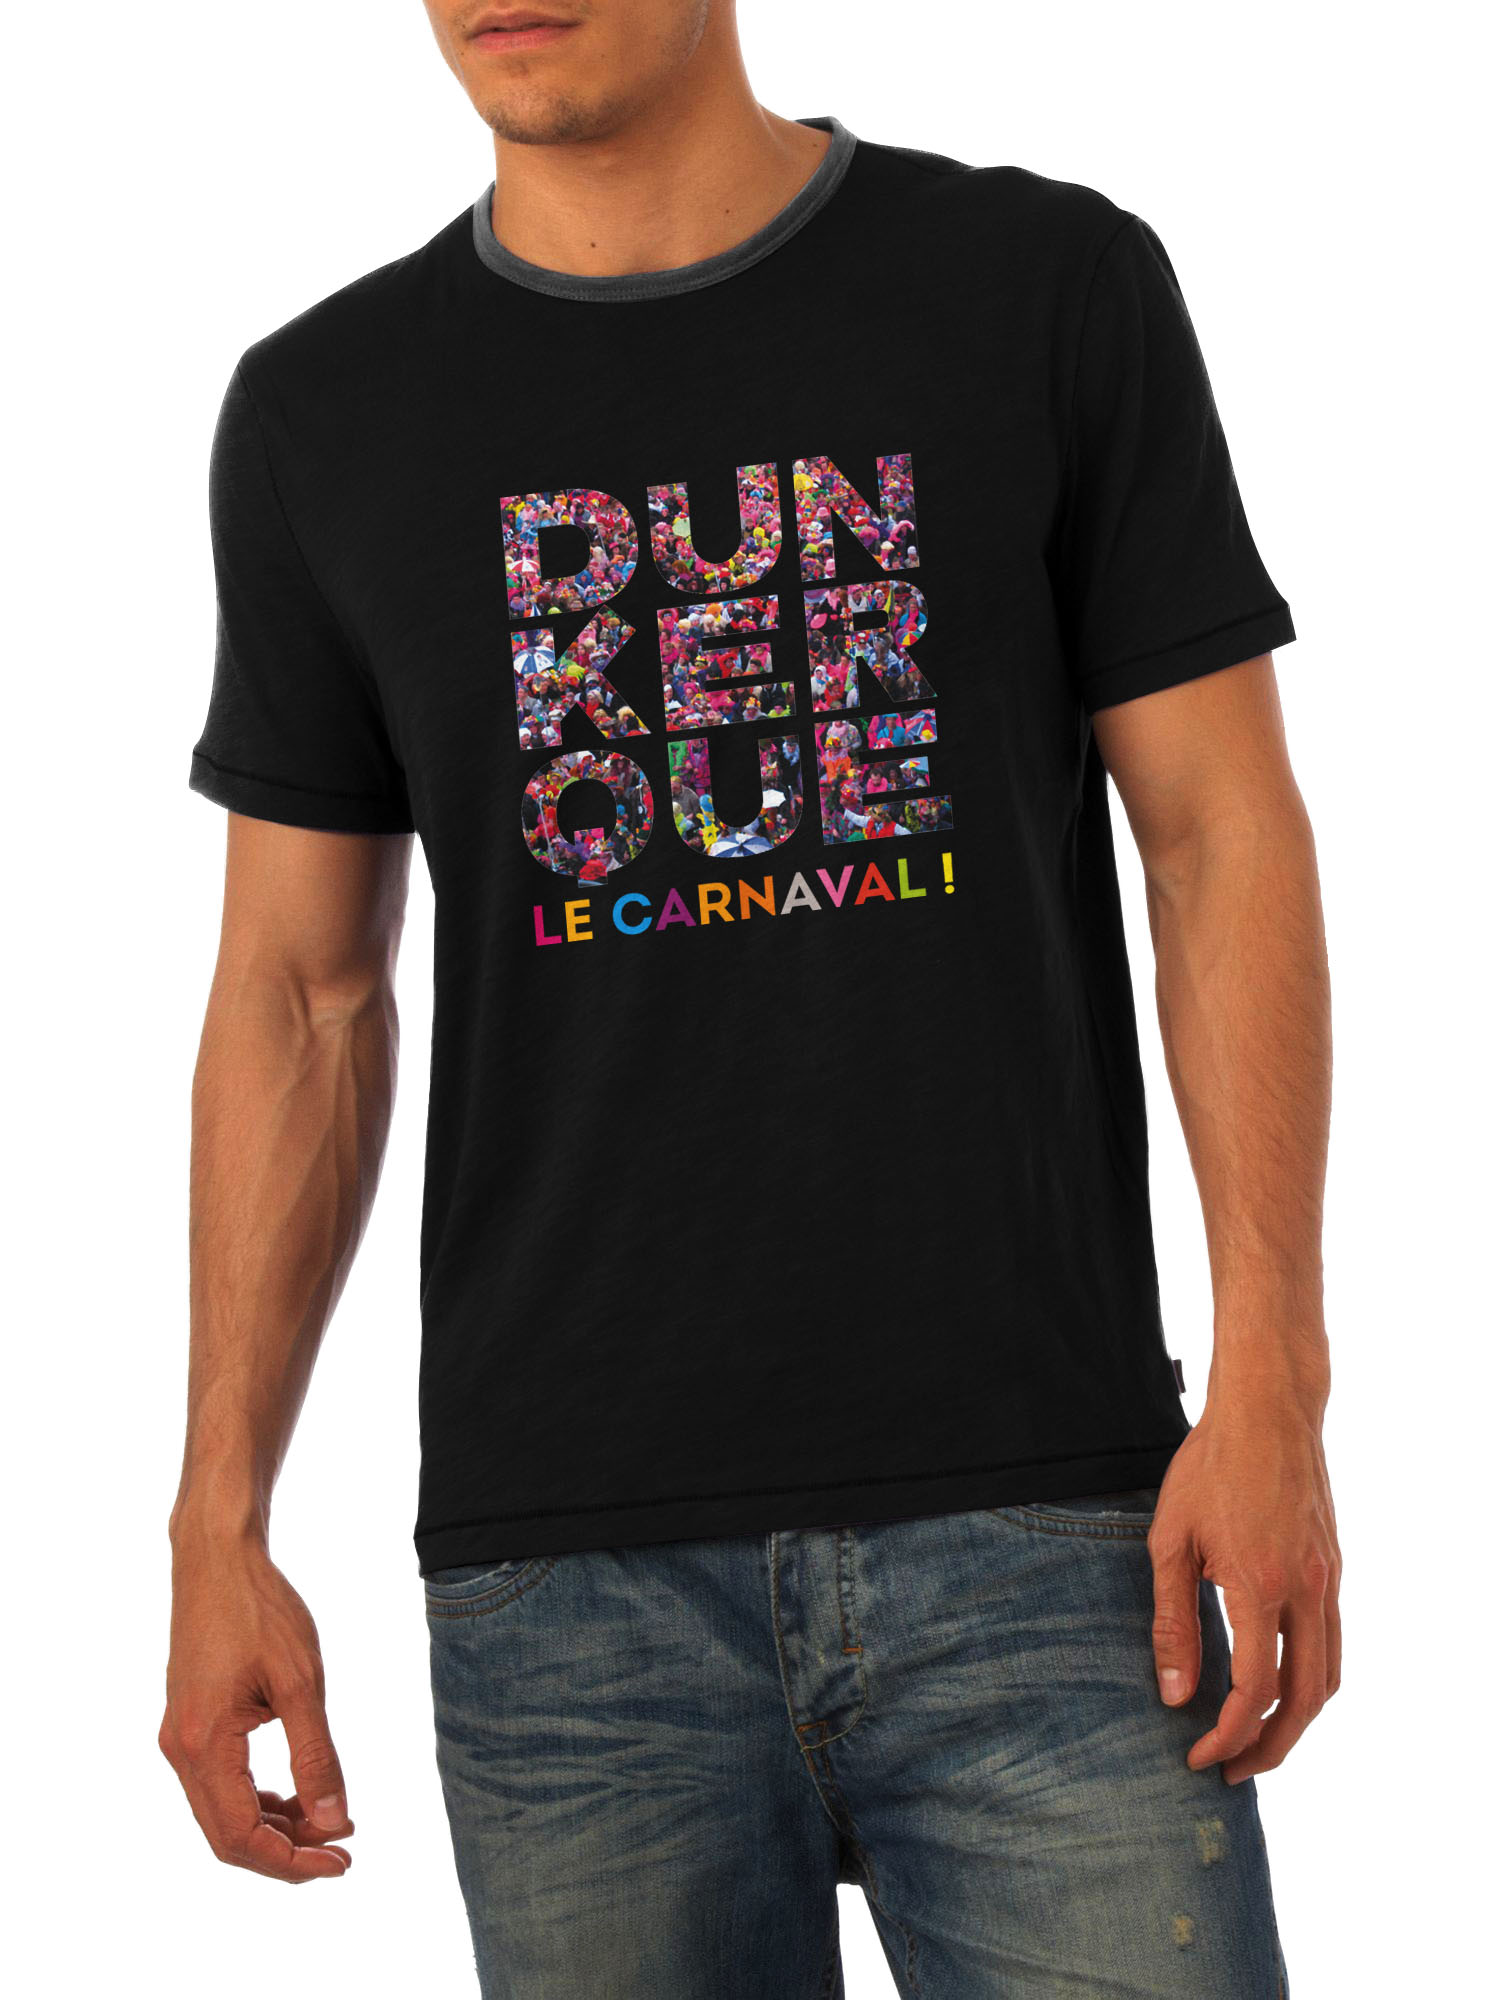 T-shirt de la collection Carnaval 2018